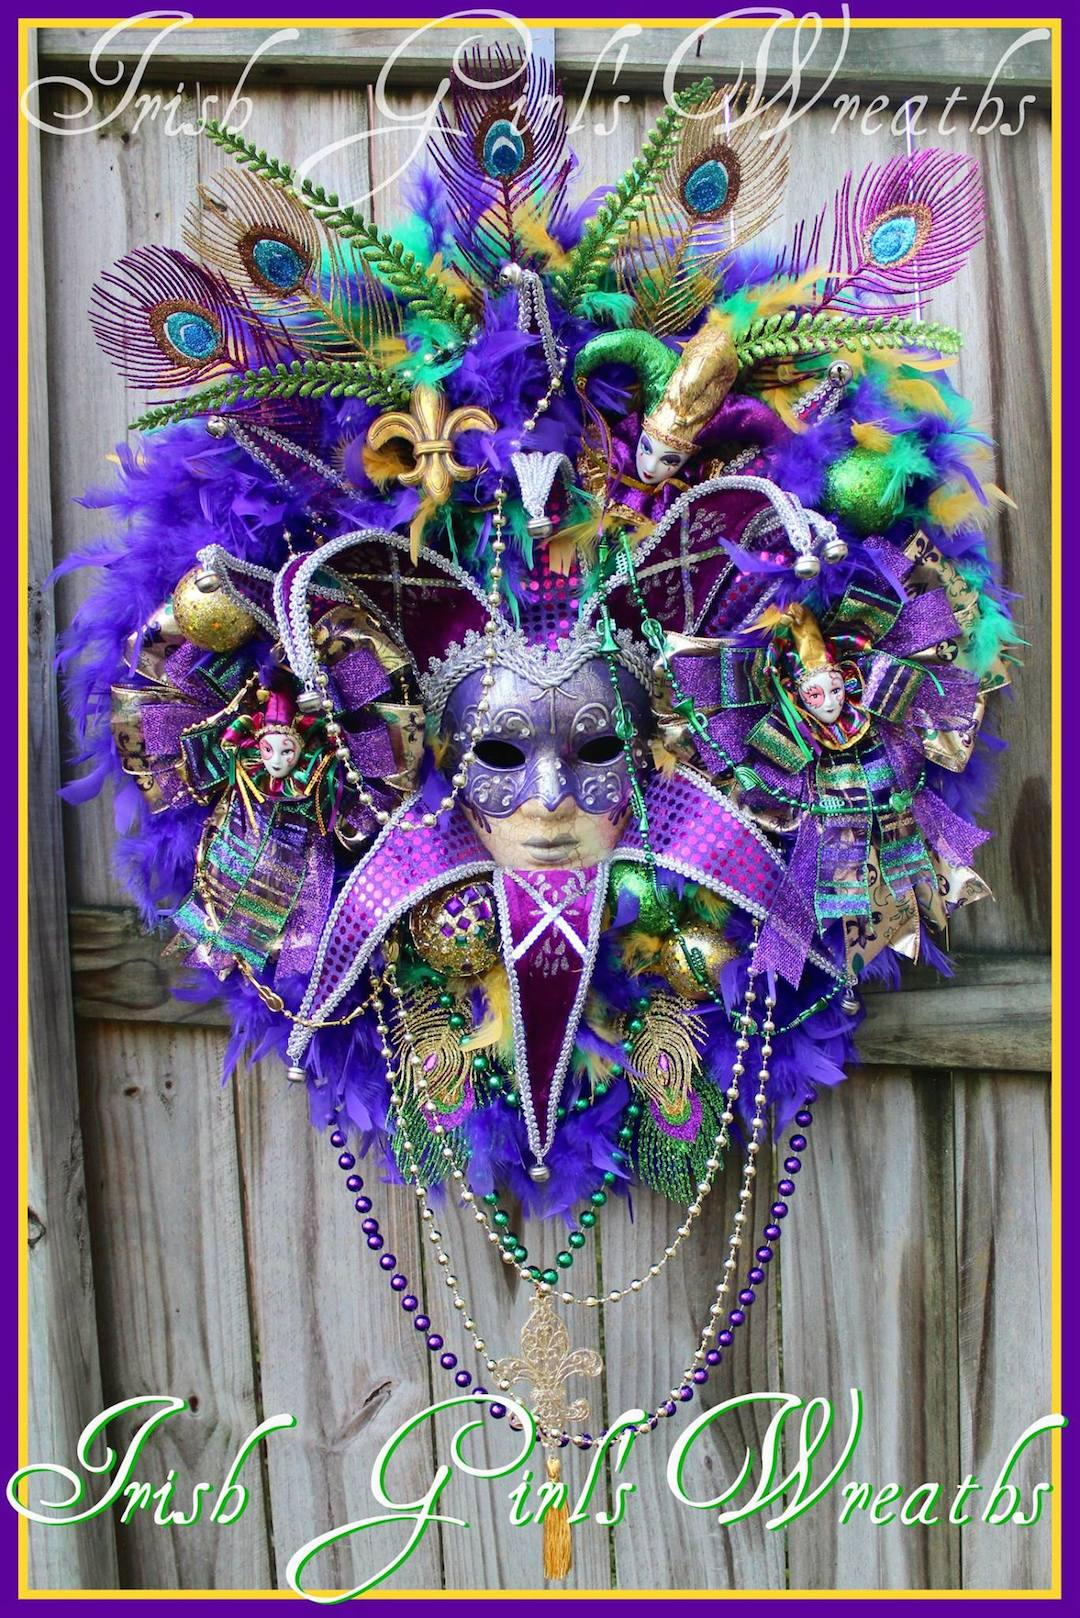 XL Purple & Teal Mardi Gras Wreath, Female Jester Mask Masquerade Wreath